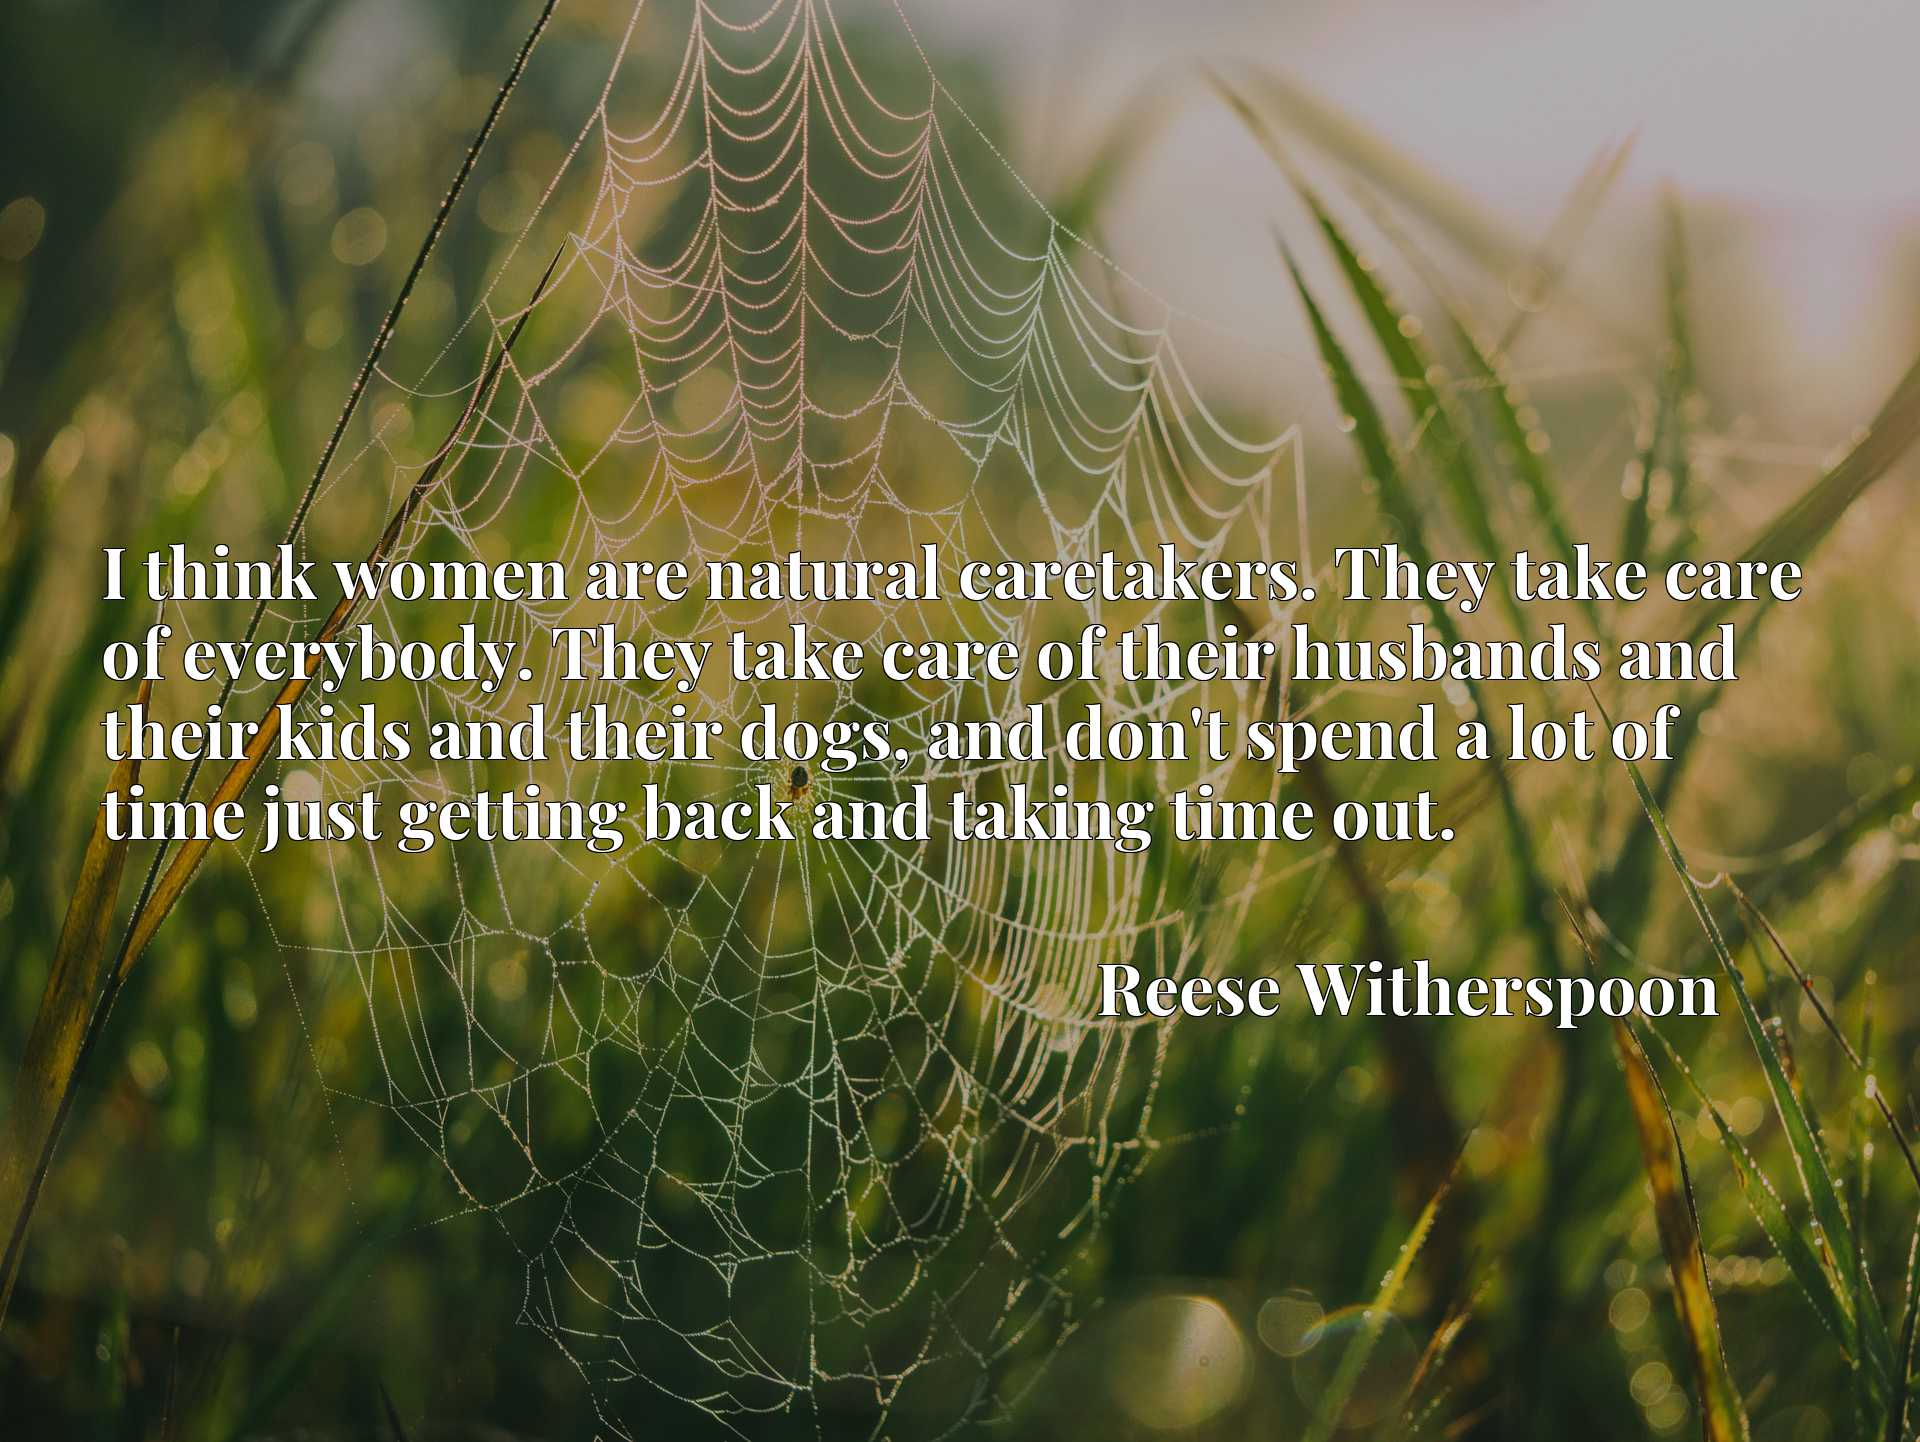 Quote Picture :I think women are natural caretakers. They take care of everybody. They take care of their husbands and their kids and their dogs, and don't spend a lot of time just getting back and taking time out.